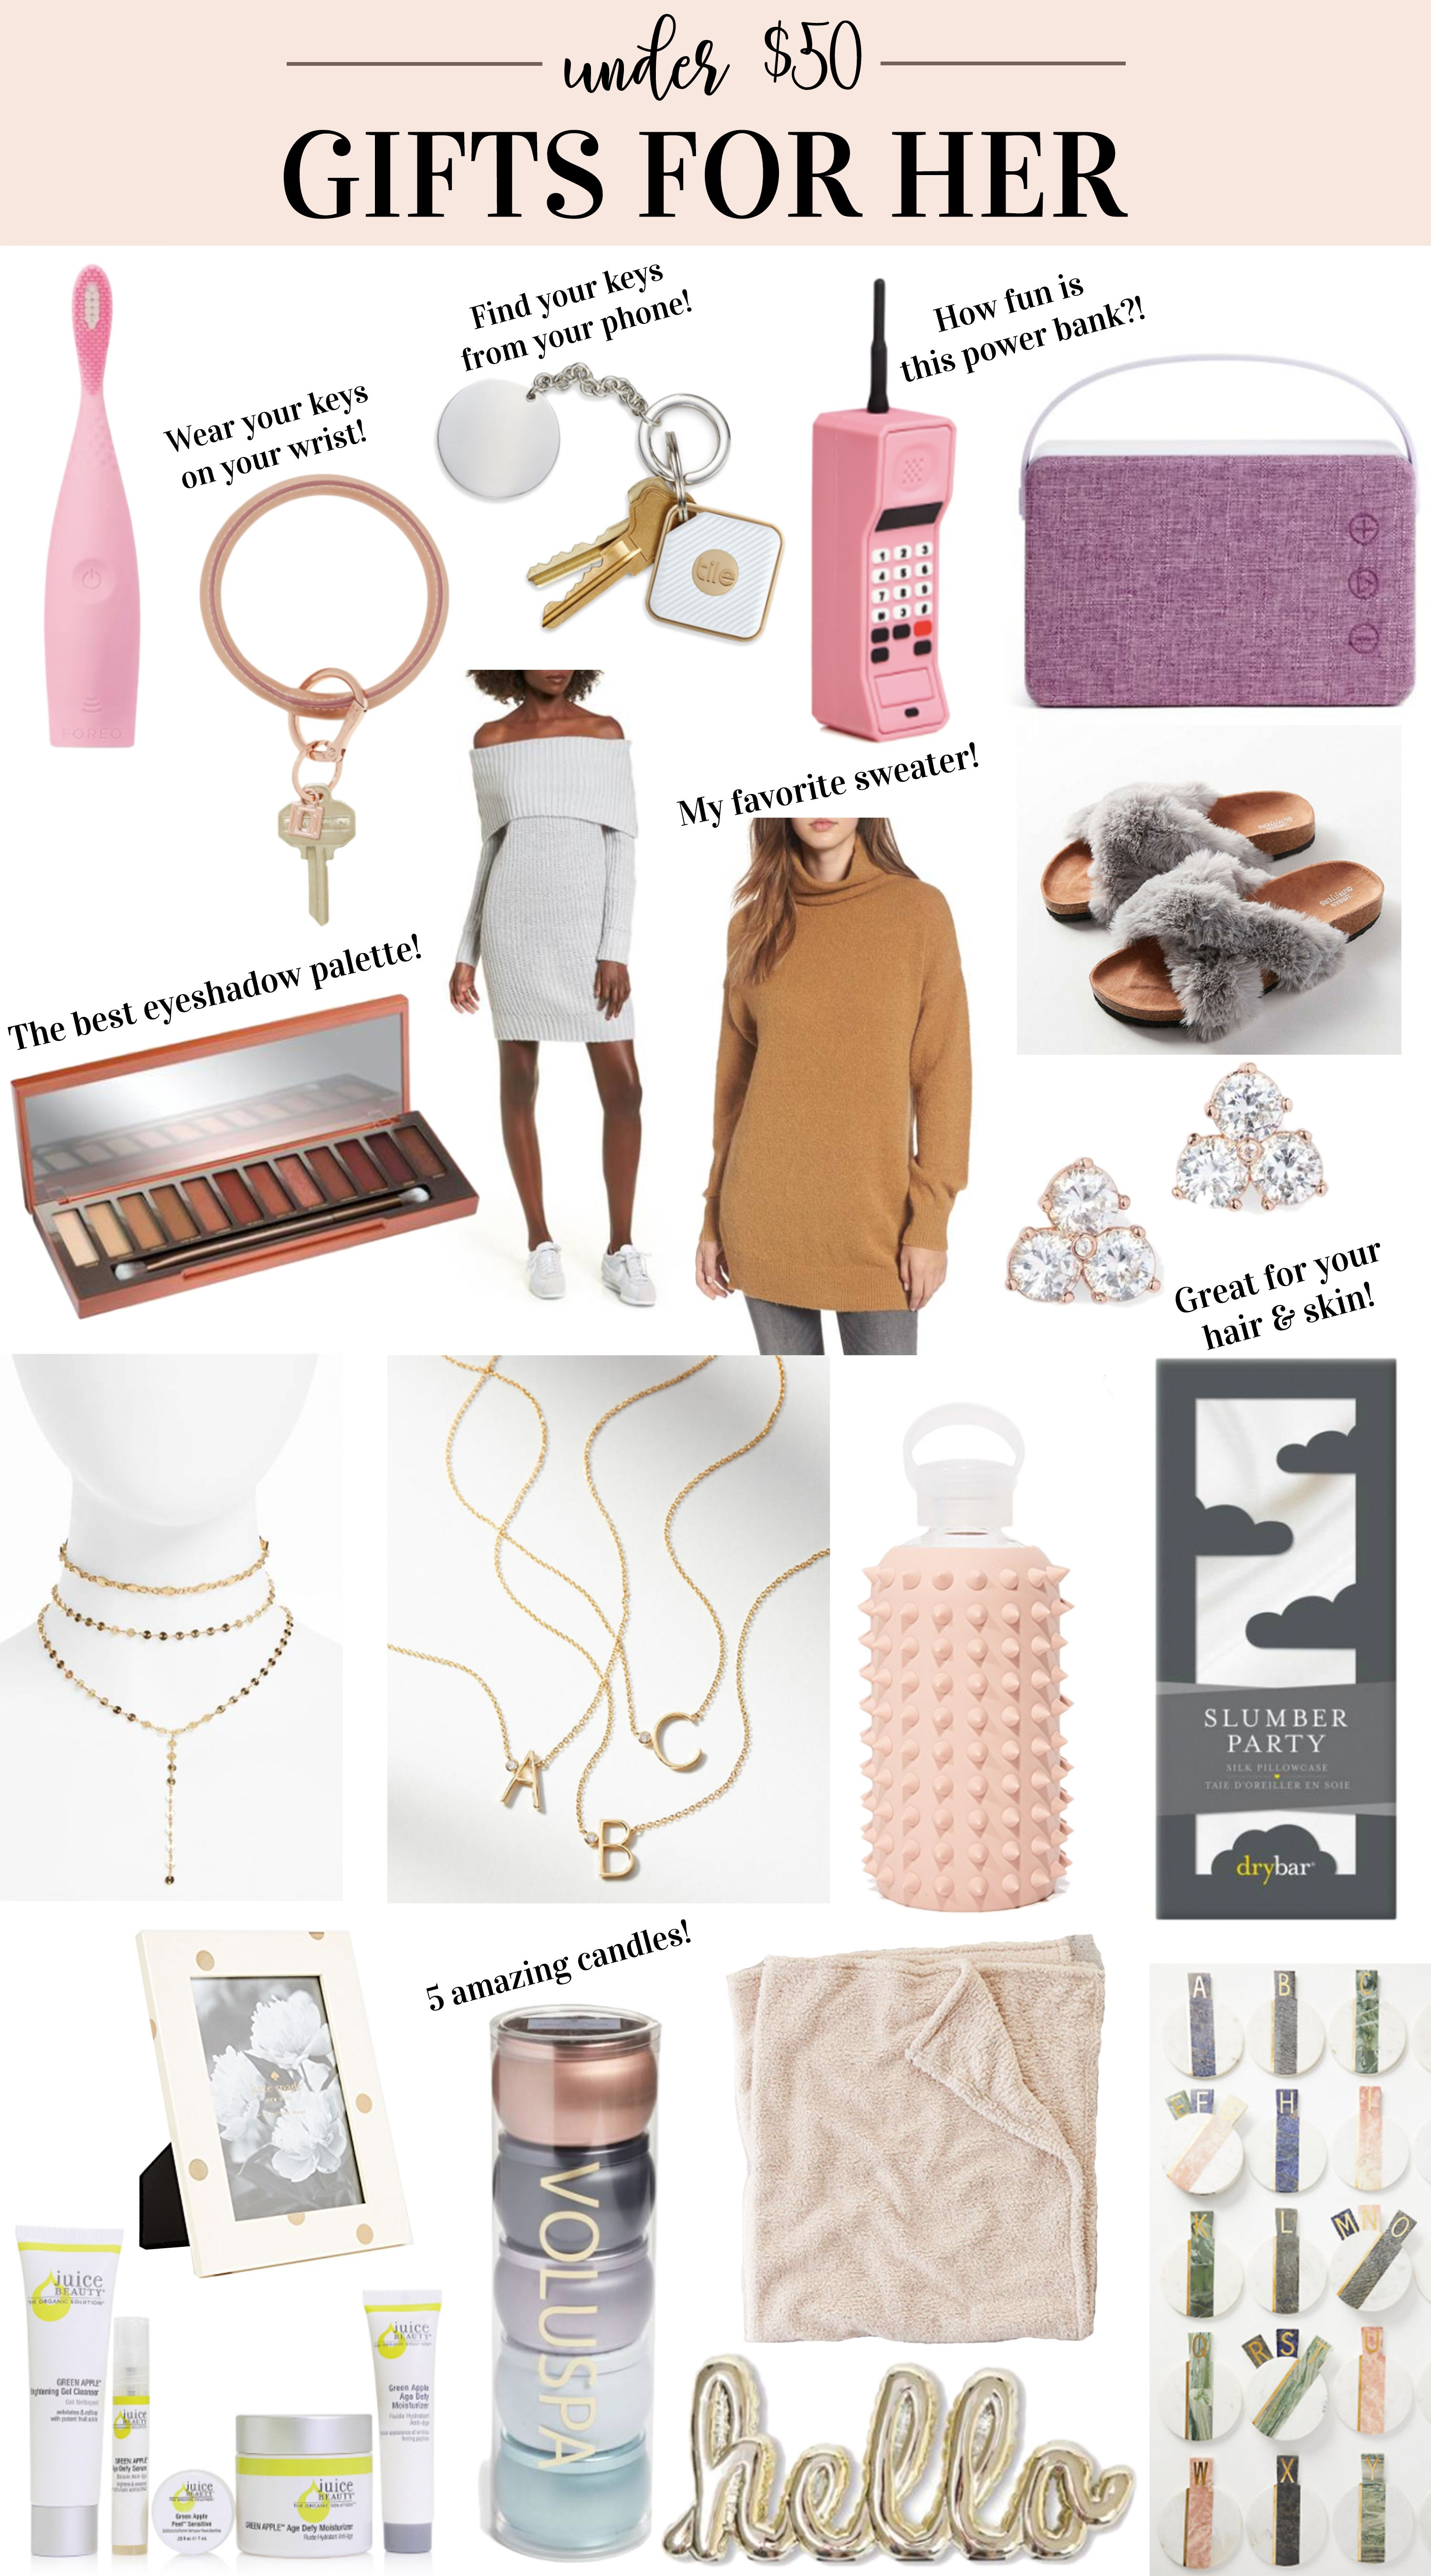 GIFTS FOR HER UNDER $50 — Me and Mr. Jones